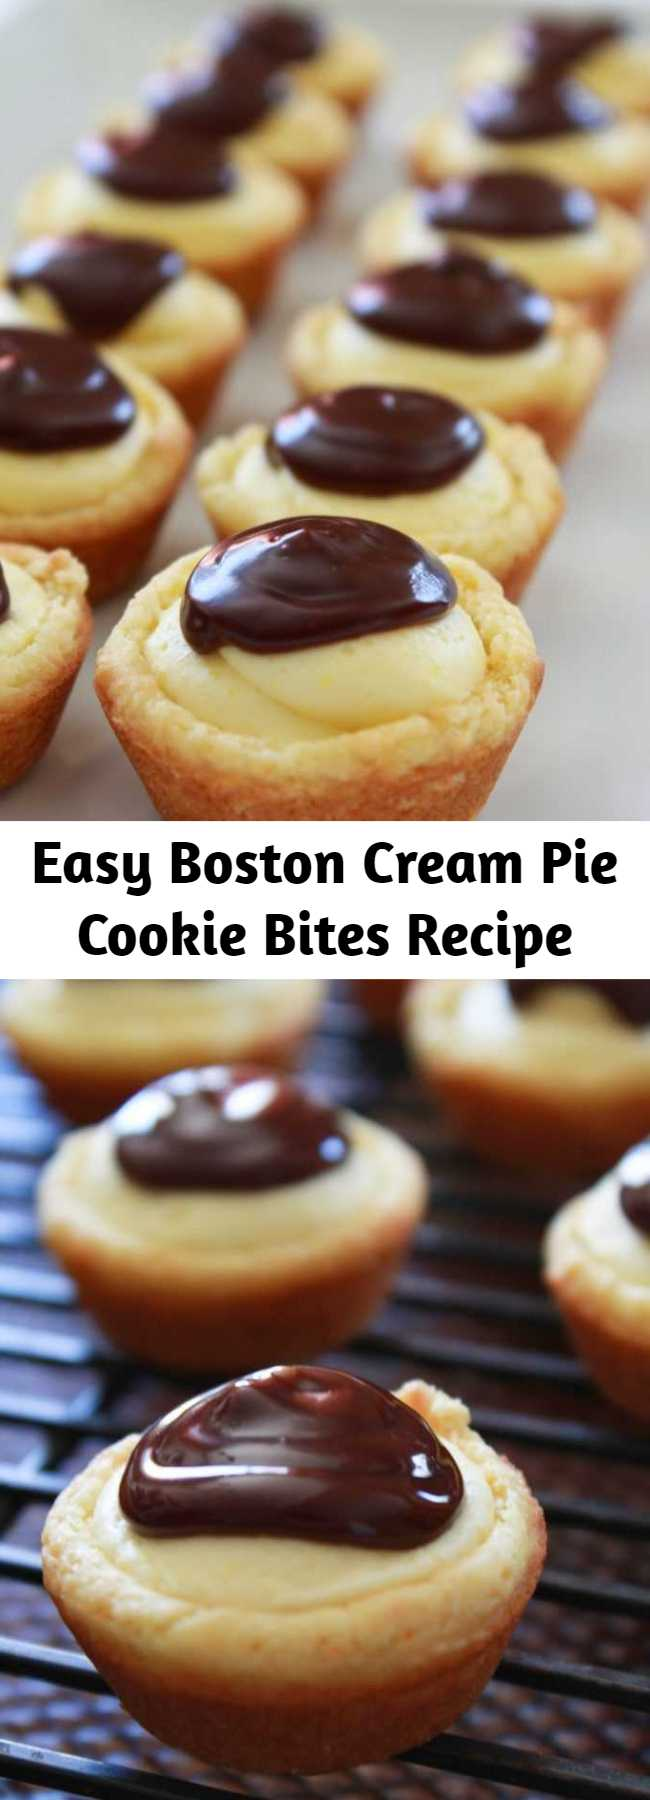 Easy Boston Cream Pie Cookie Bites Recipe - All of the awesome flavors you love from the traditional Boston Cream Pie are turned into a cookie cup.  They are quick to make, starting with a cake mix and taste delicious.  Everyone will go crazy for these little cuties.